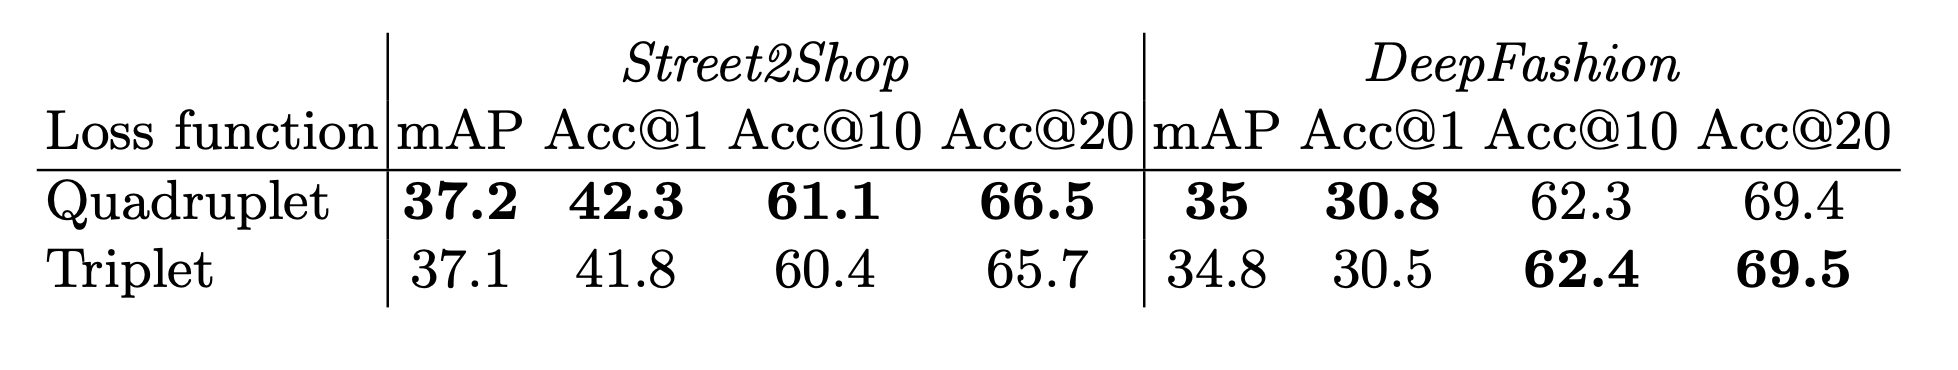 Table with results on Street2Shop and DeepFashion datasets achieved with triplet and quadruplet loss functions